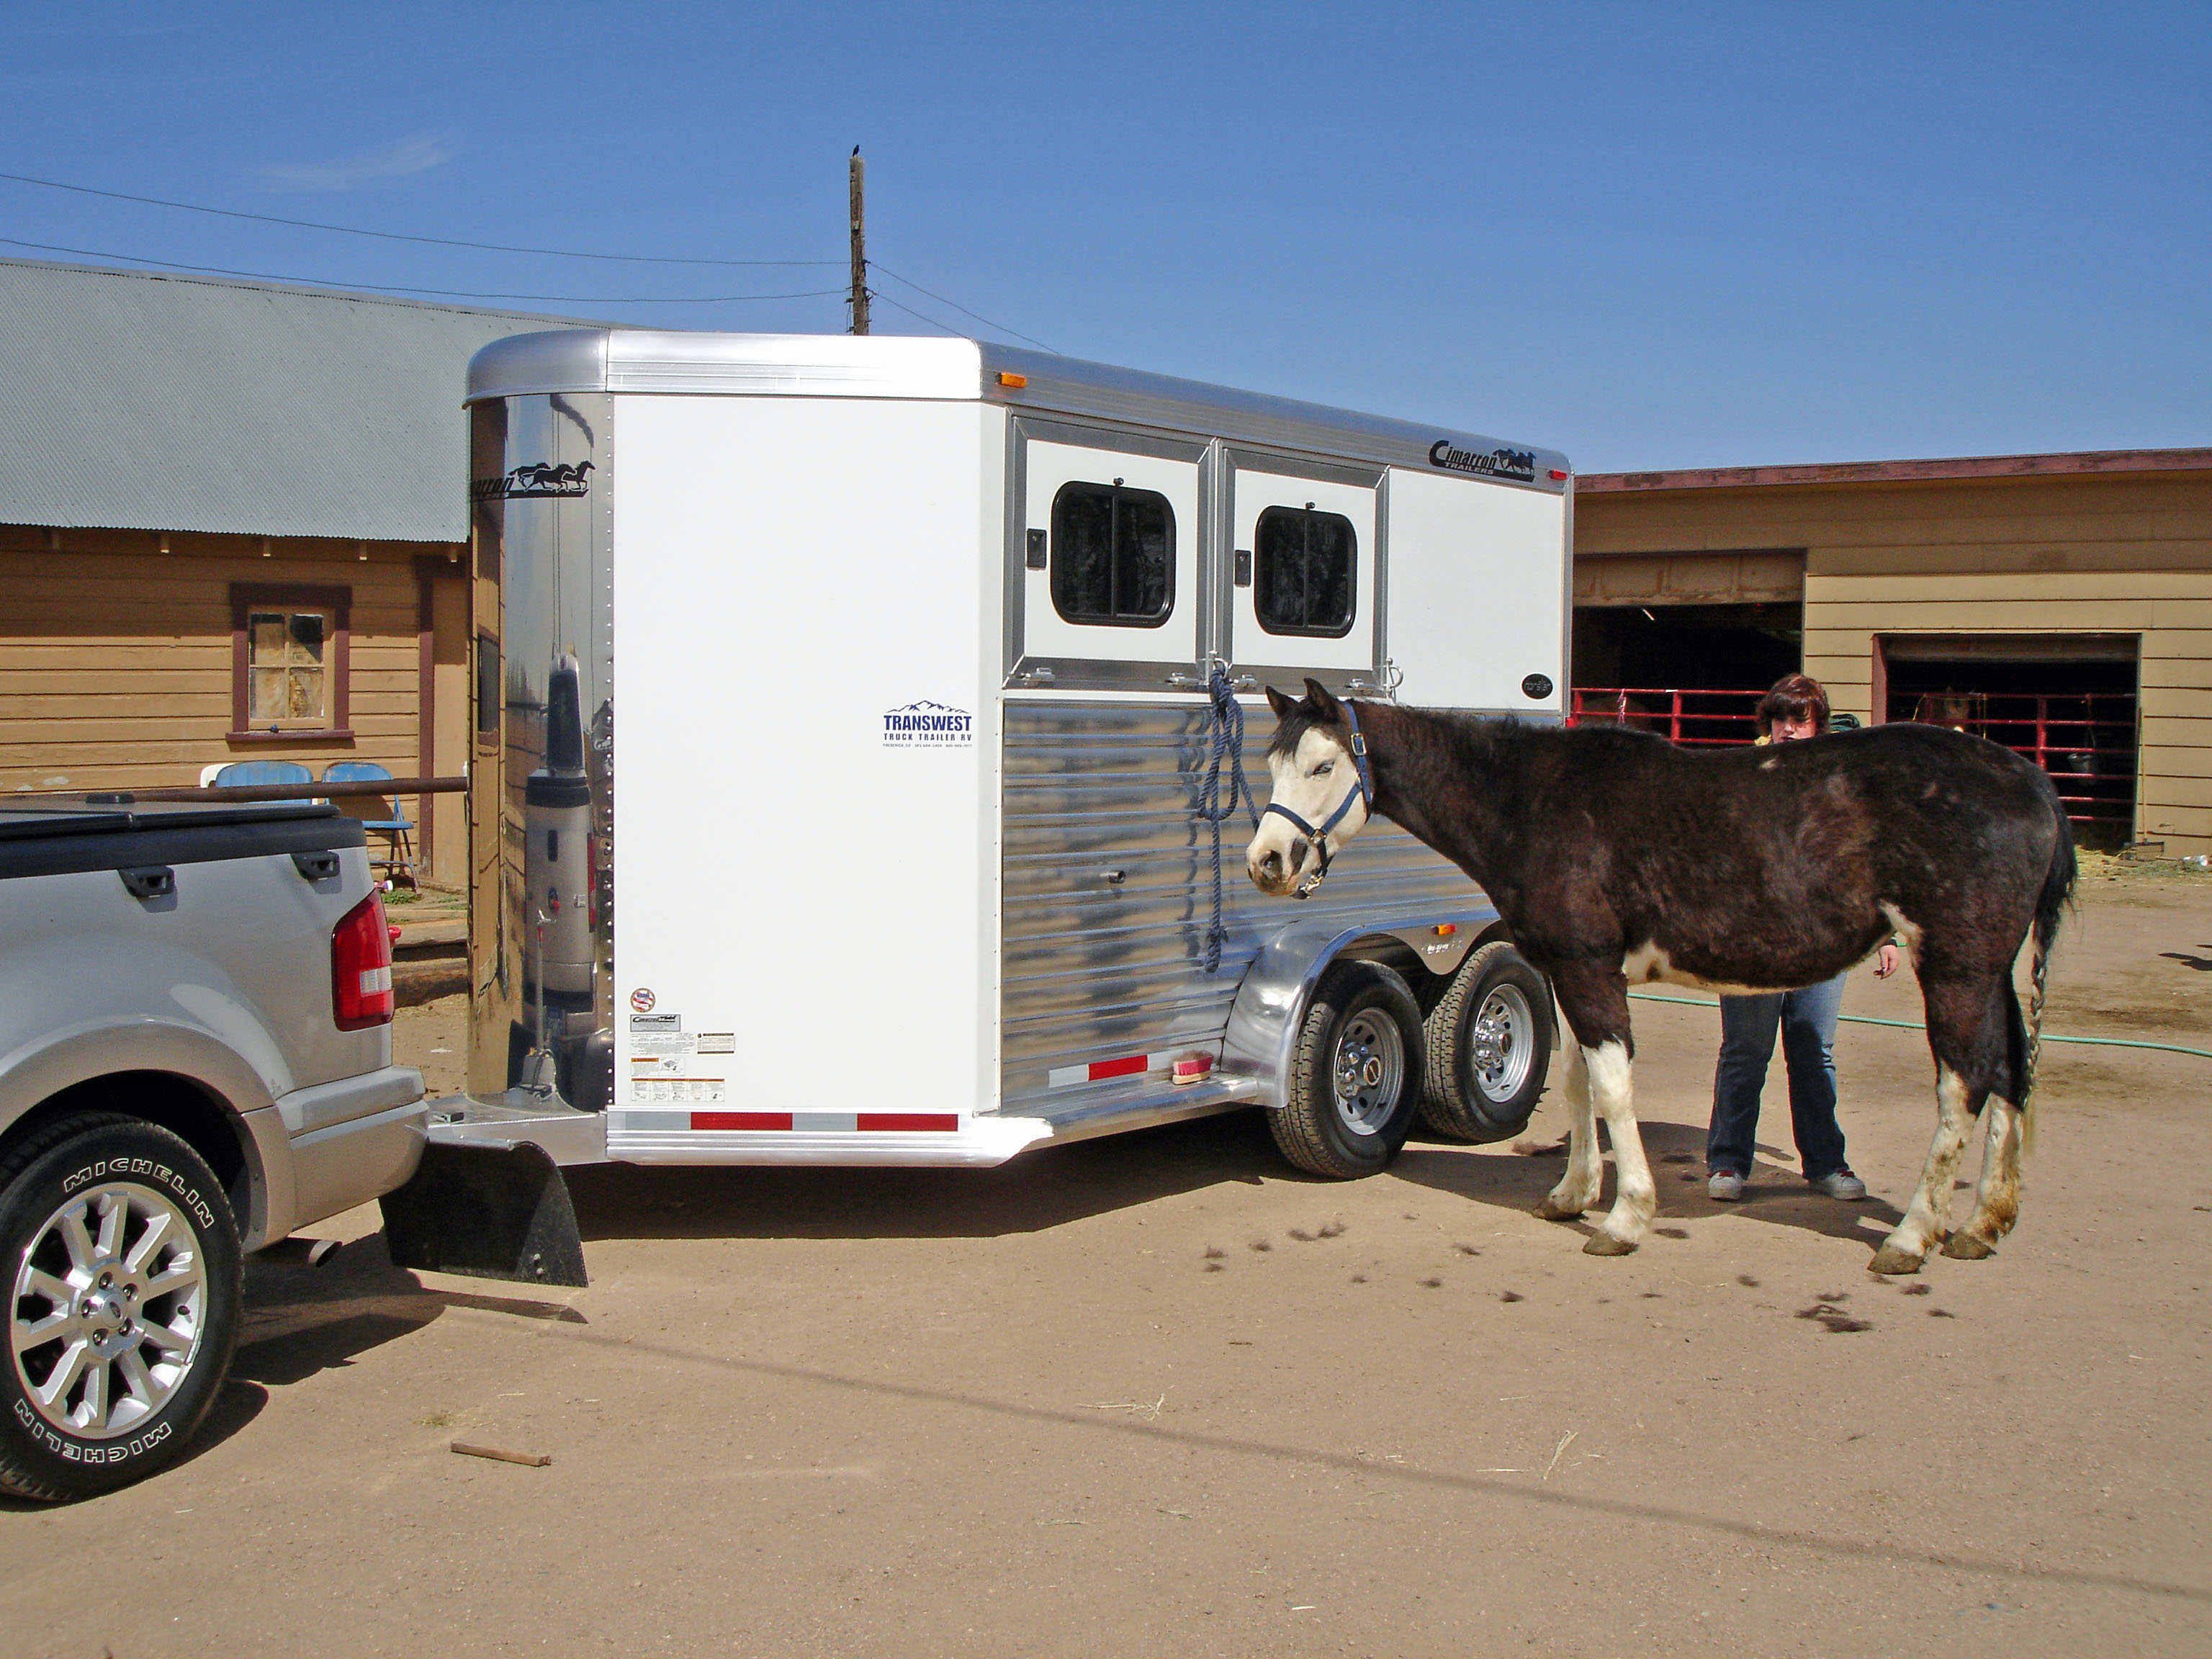 Handsome Hardworking Ford Trucks 1960s furthermore 2011 Tiffin Phaeton Class A Motorhome also Big Rig Truck C er Build furthermore VANTRAAX HKANT 40K in addition Vehicles. on semi truck travel trailers